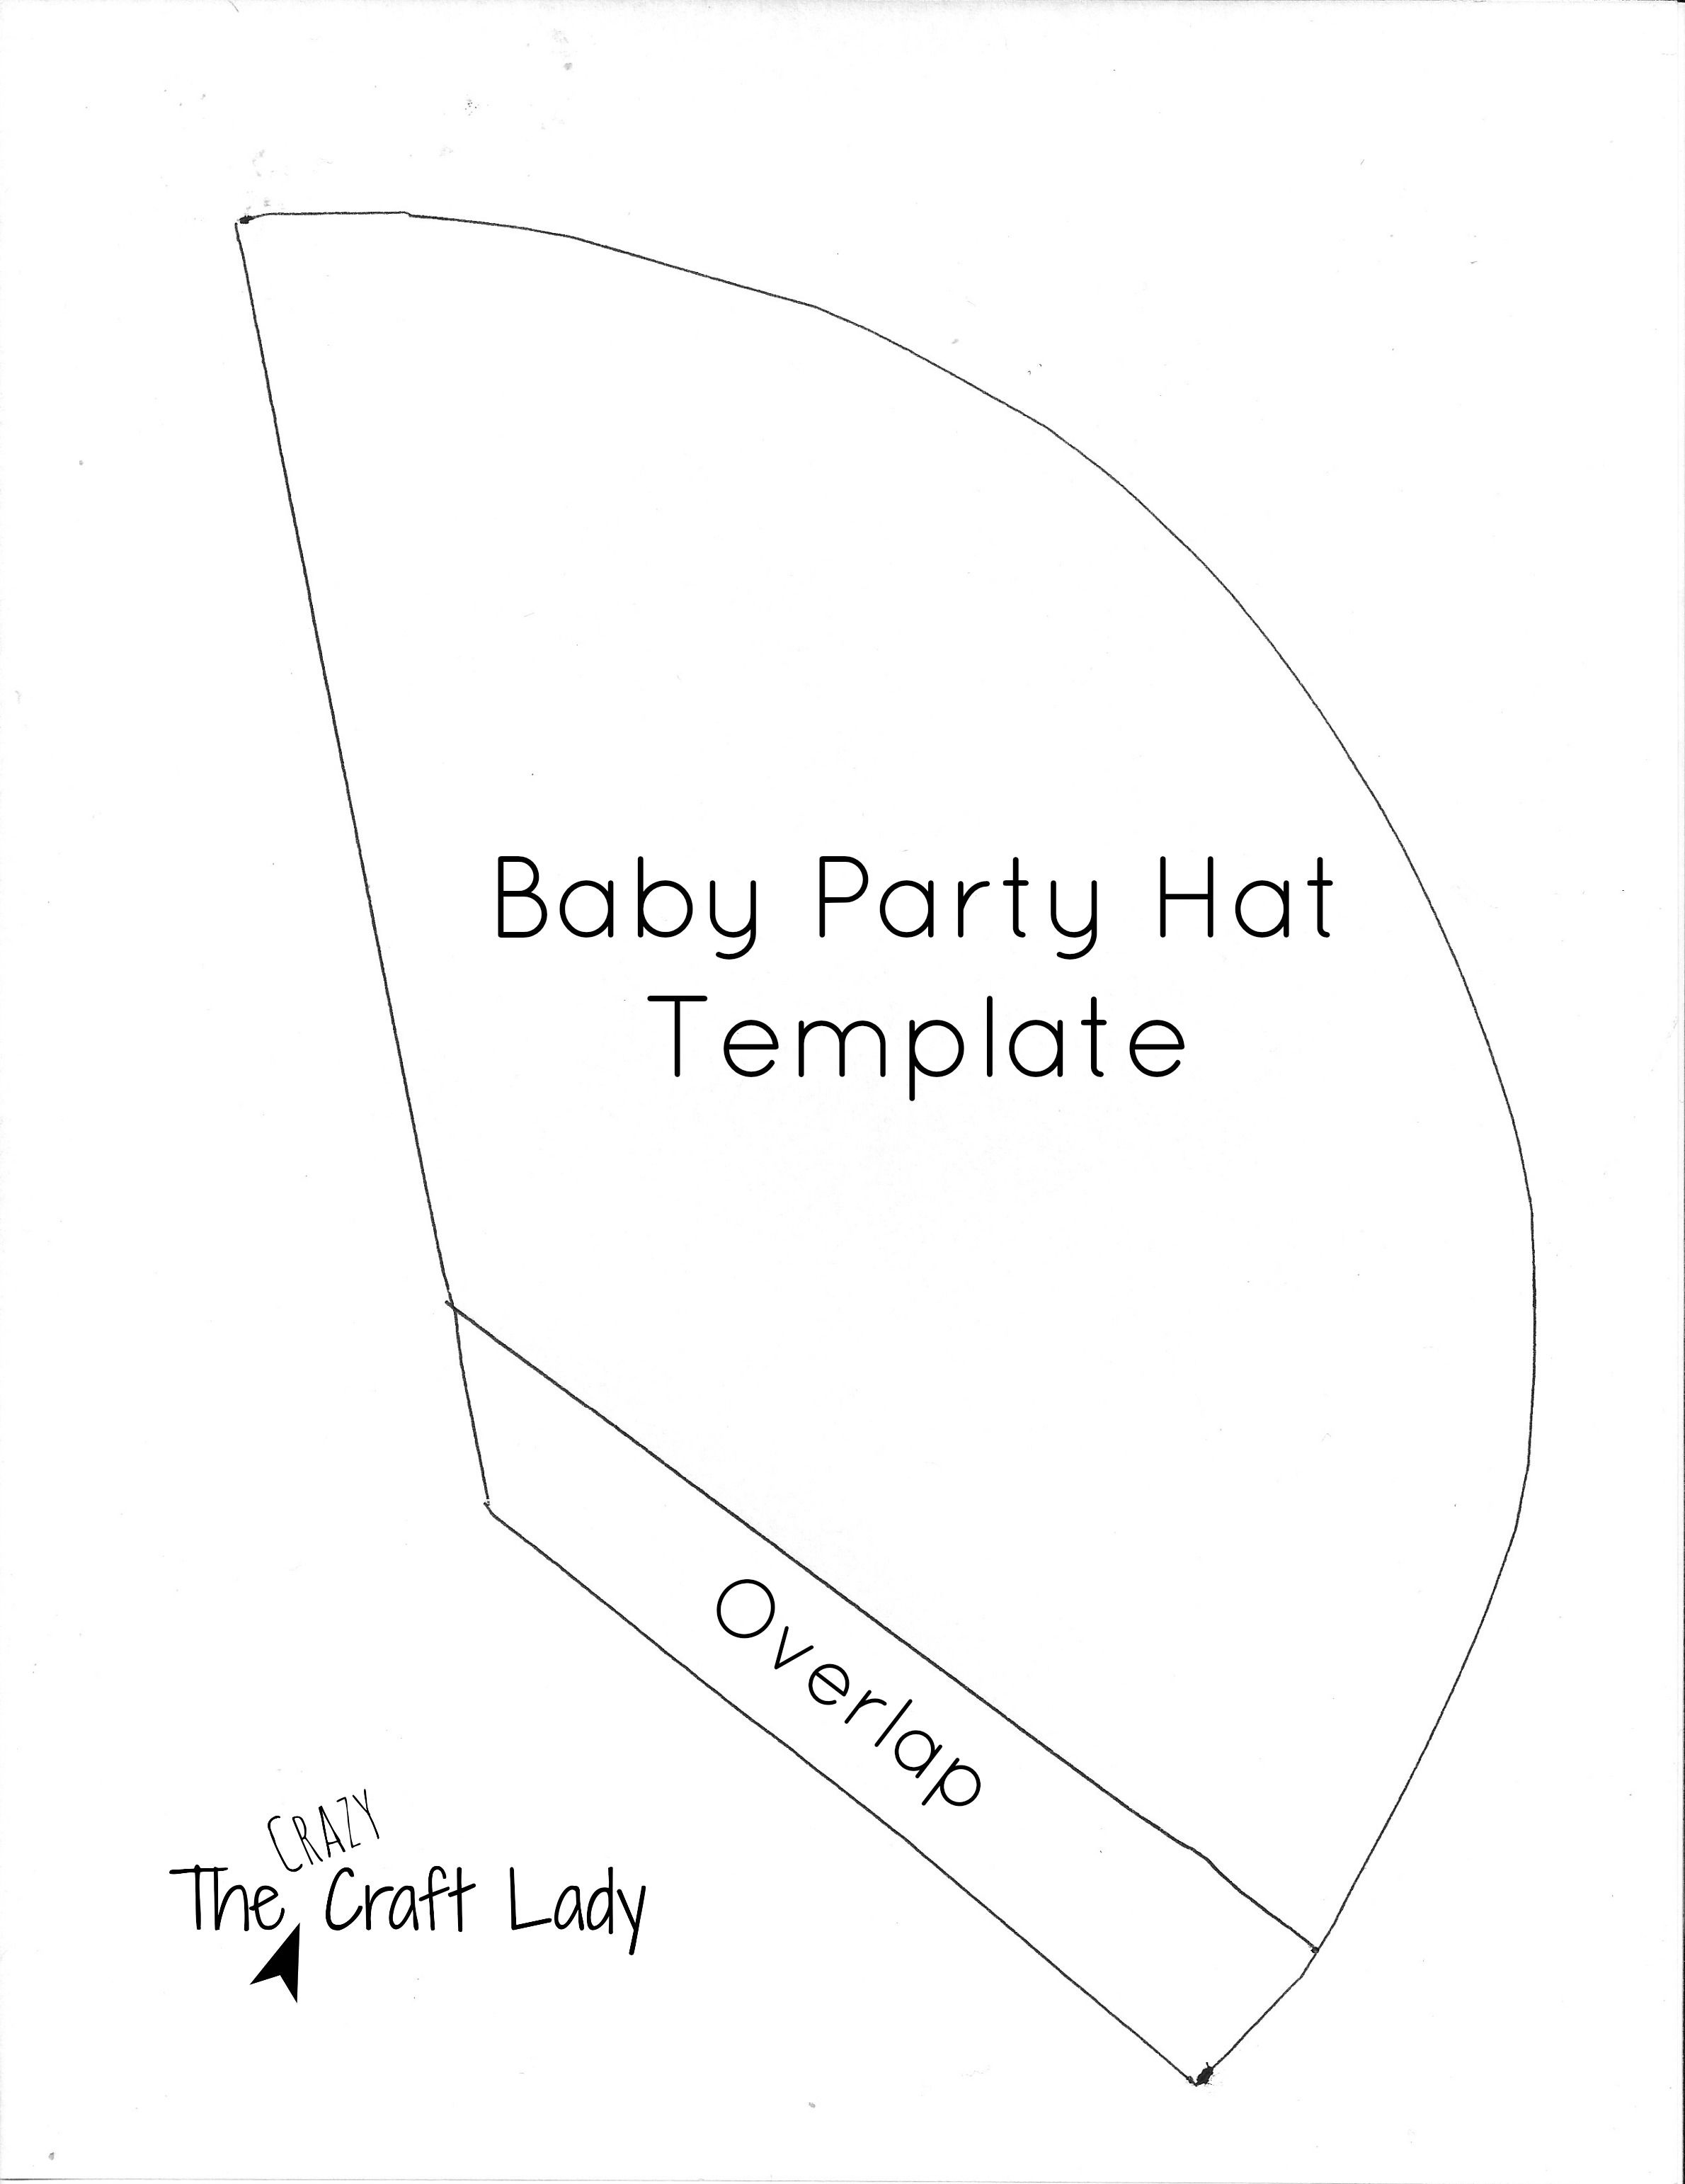 Baby Party Hats And Free Printable Template | Collin | Diy Birthday - Free Printable Birthday Party Hats